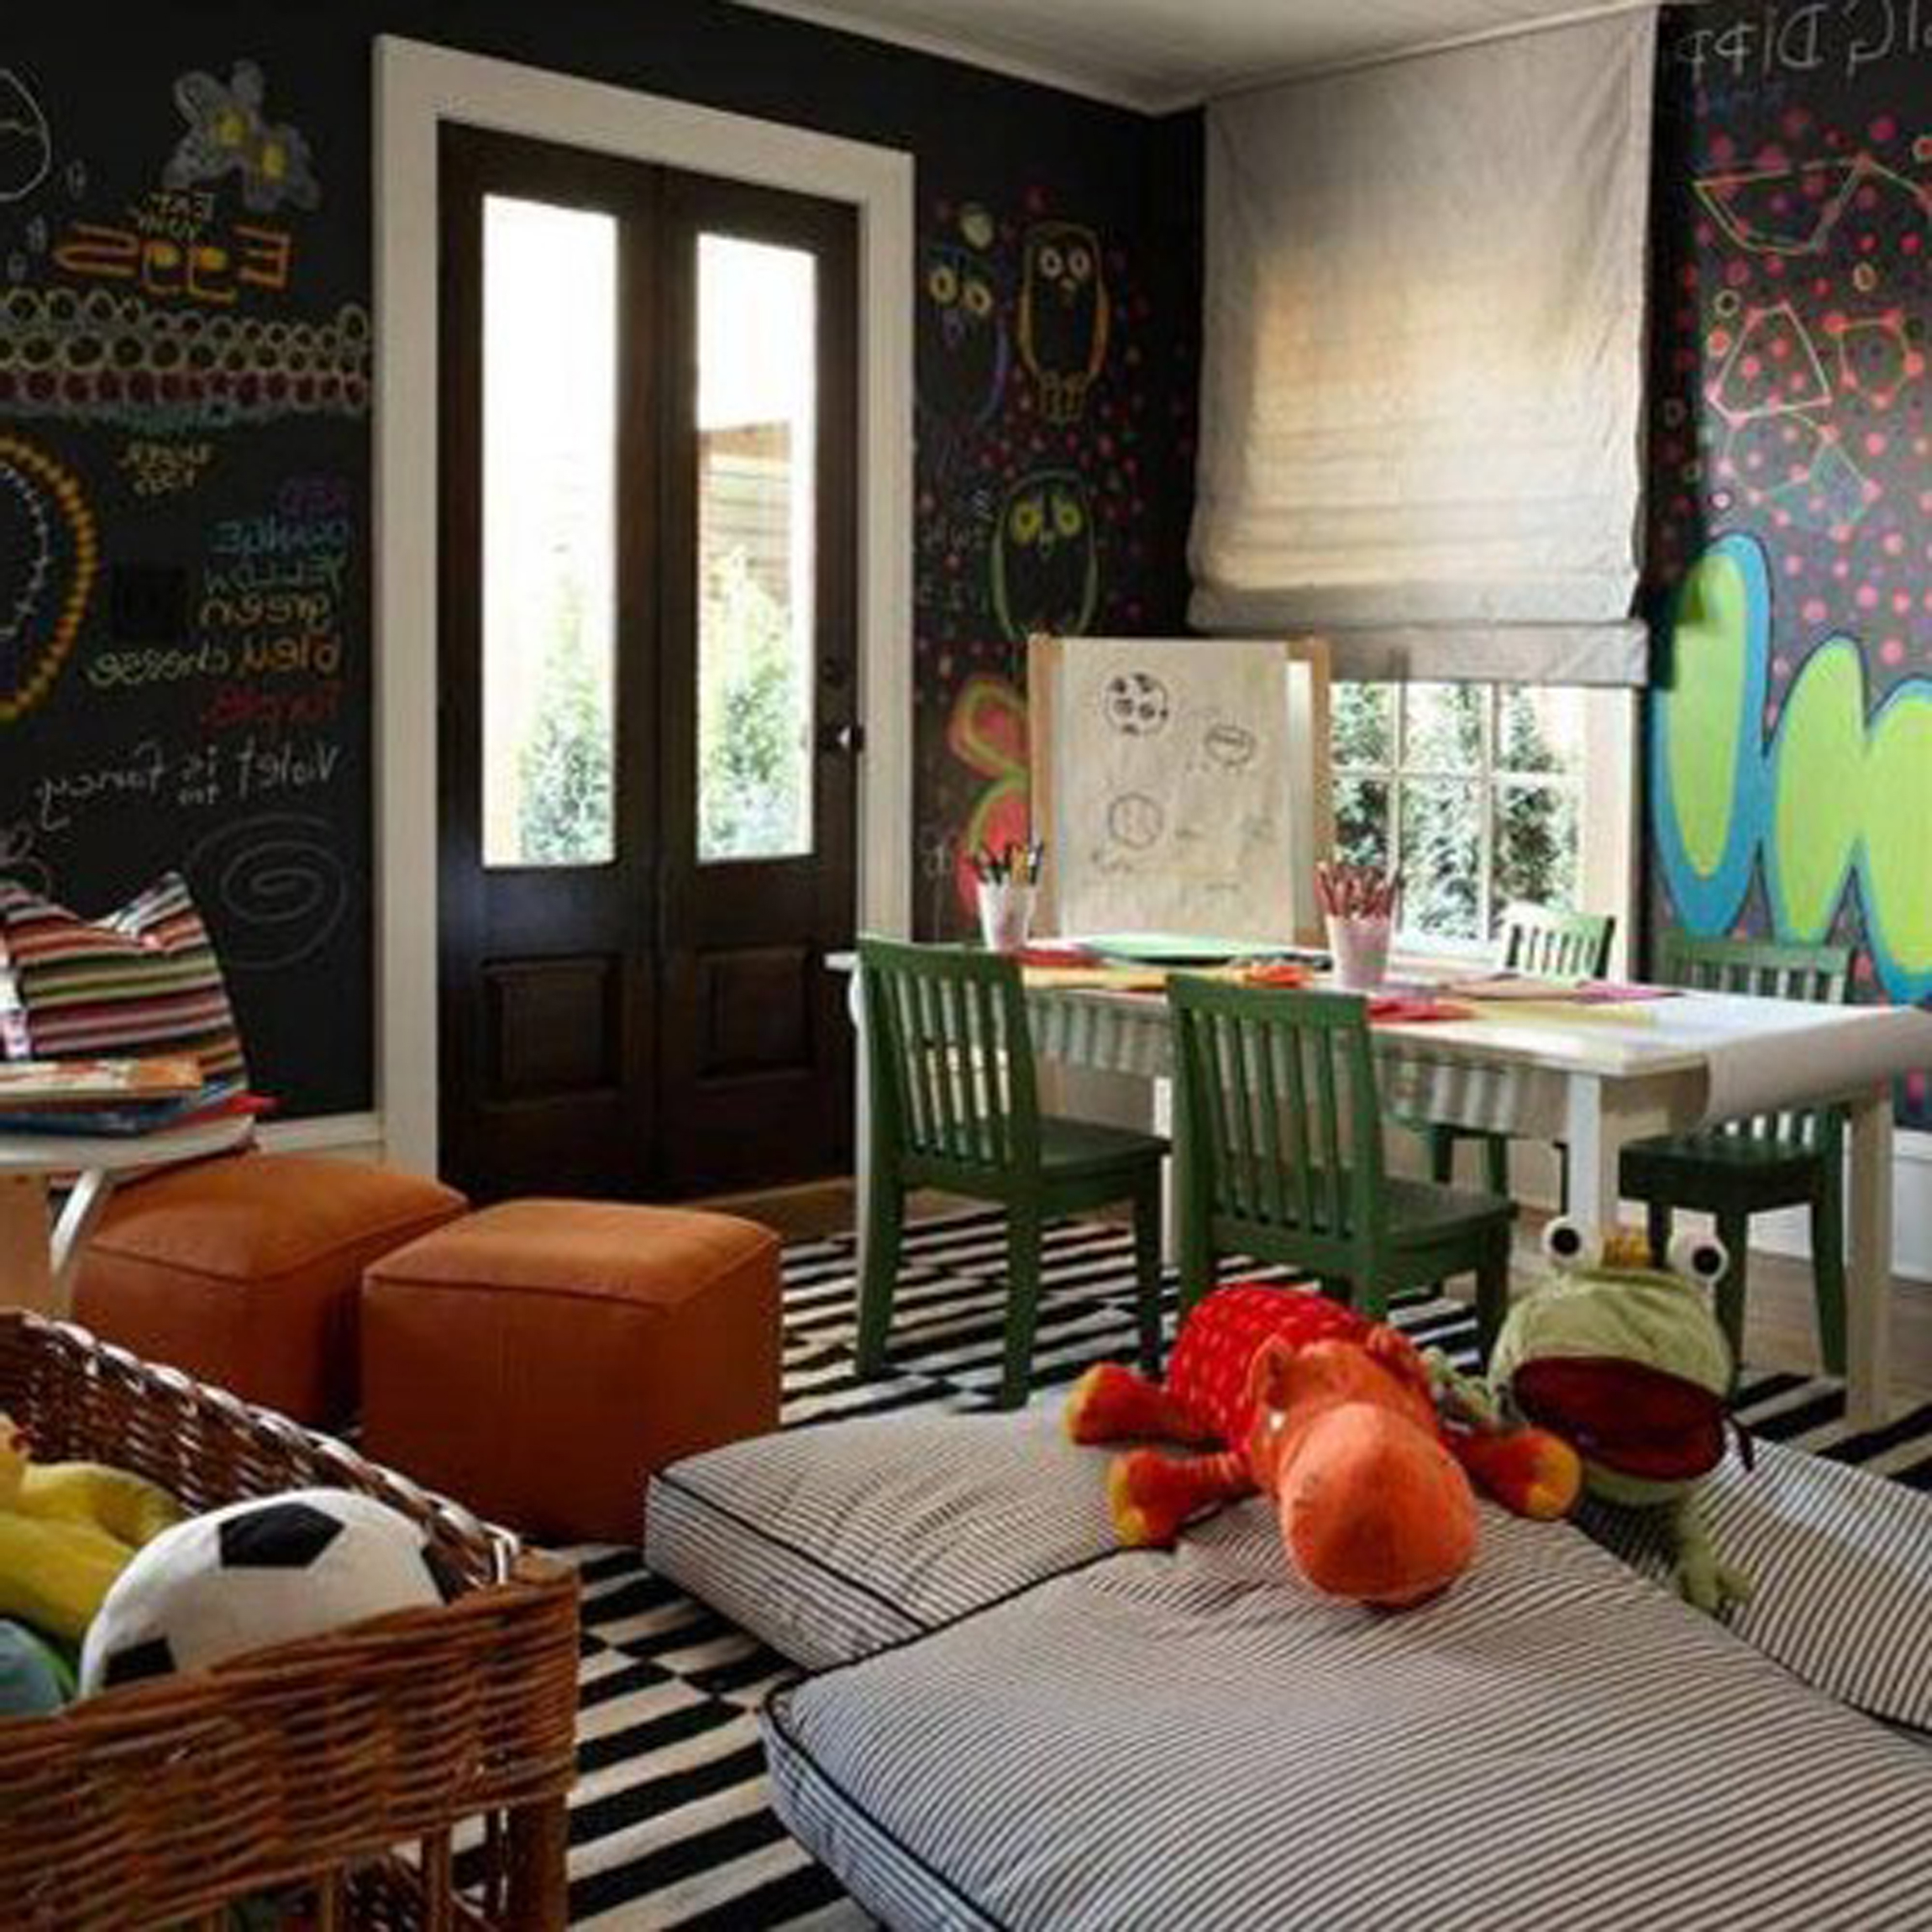 Kids Room Ideas With Fancy Blackand White Stripes Rug Pattern Plus Nice Brown Ottoman Design Also Endearing Chalkboard Decor For Cozy Kids Room Ideas (Image 28 of 28)